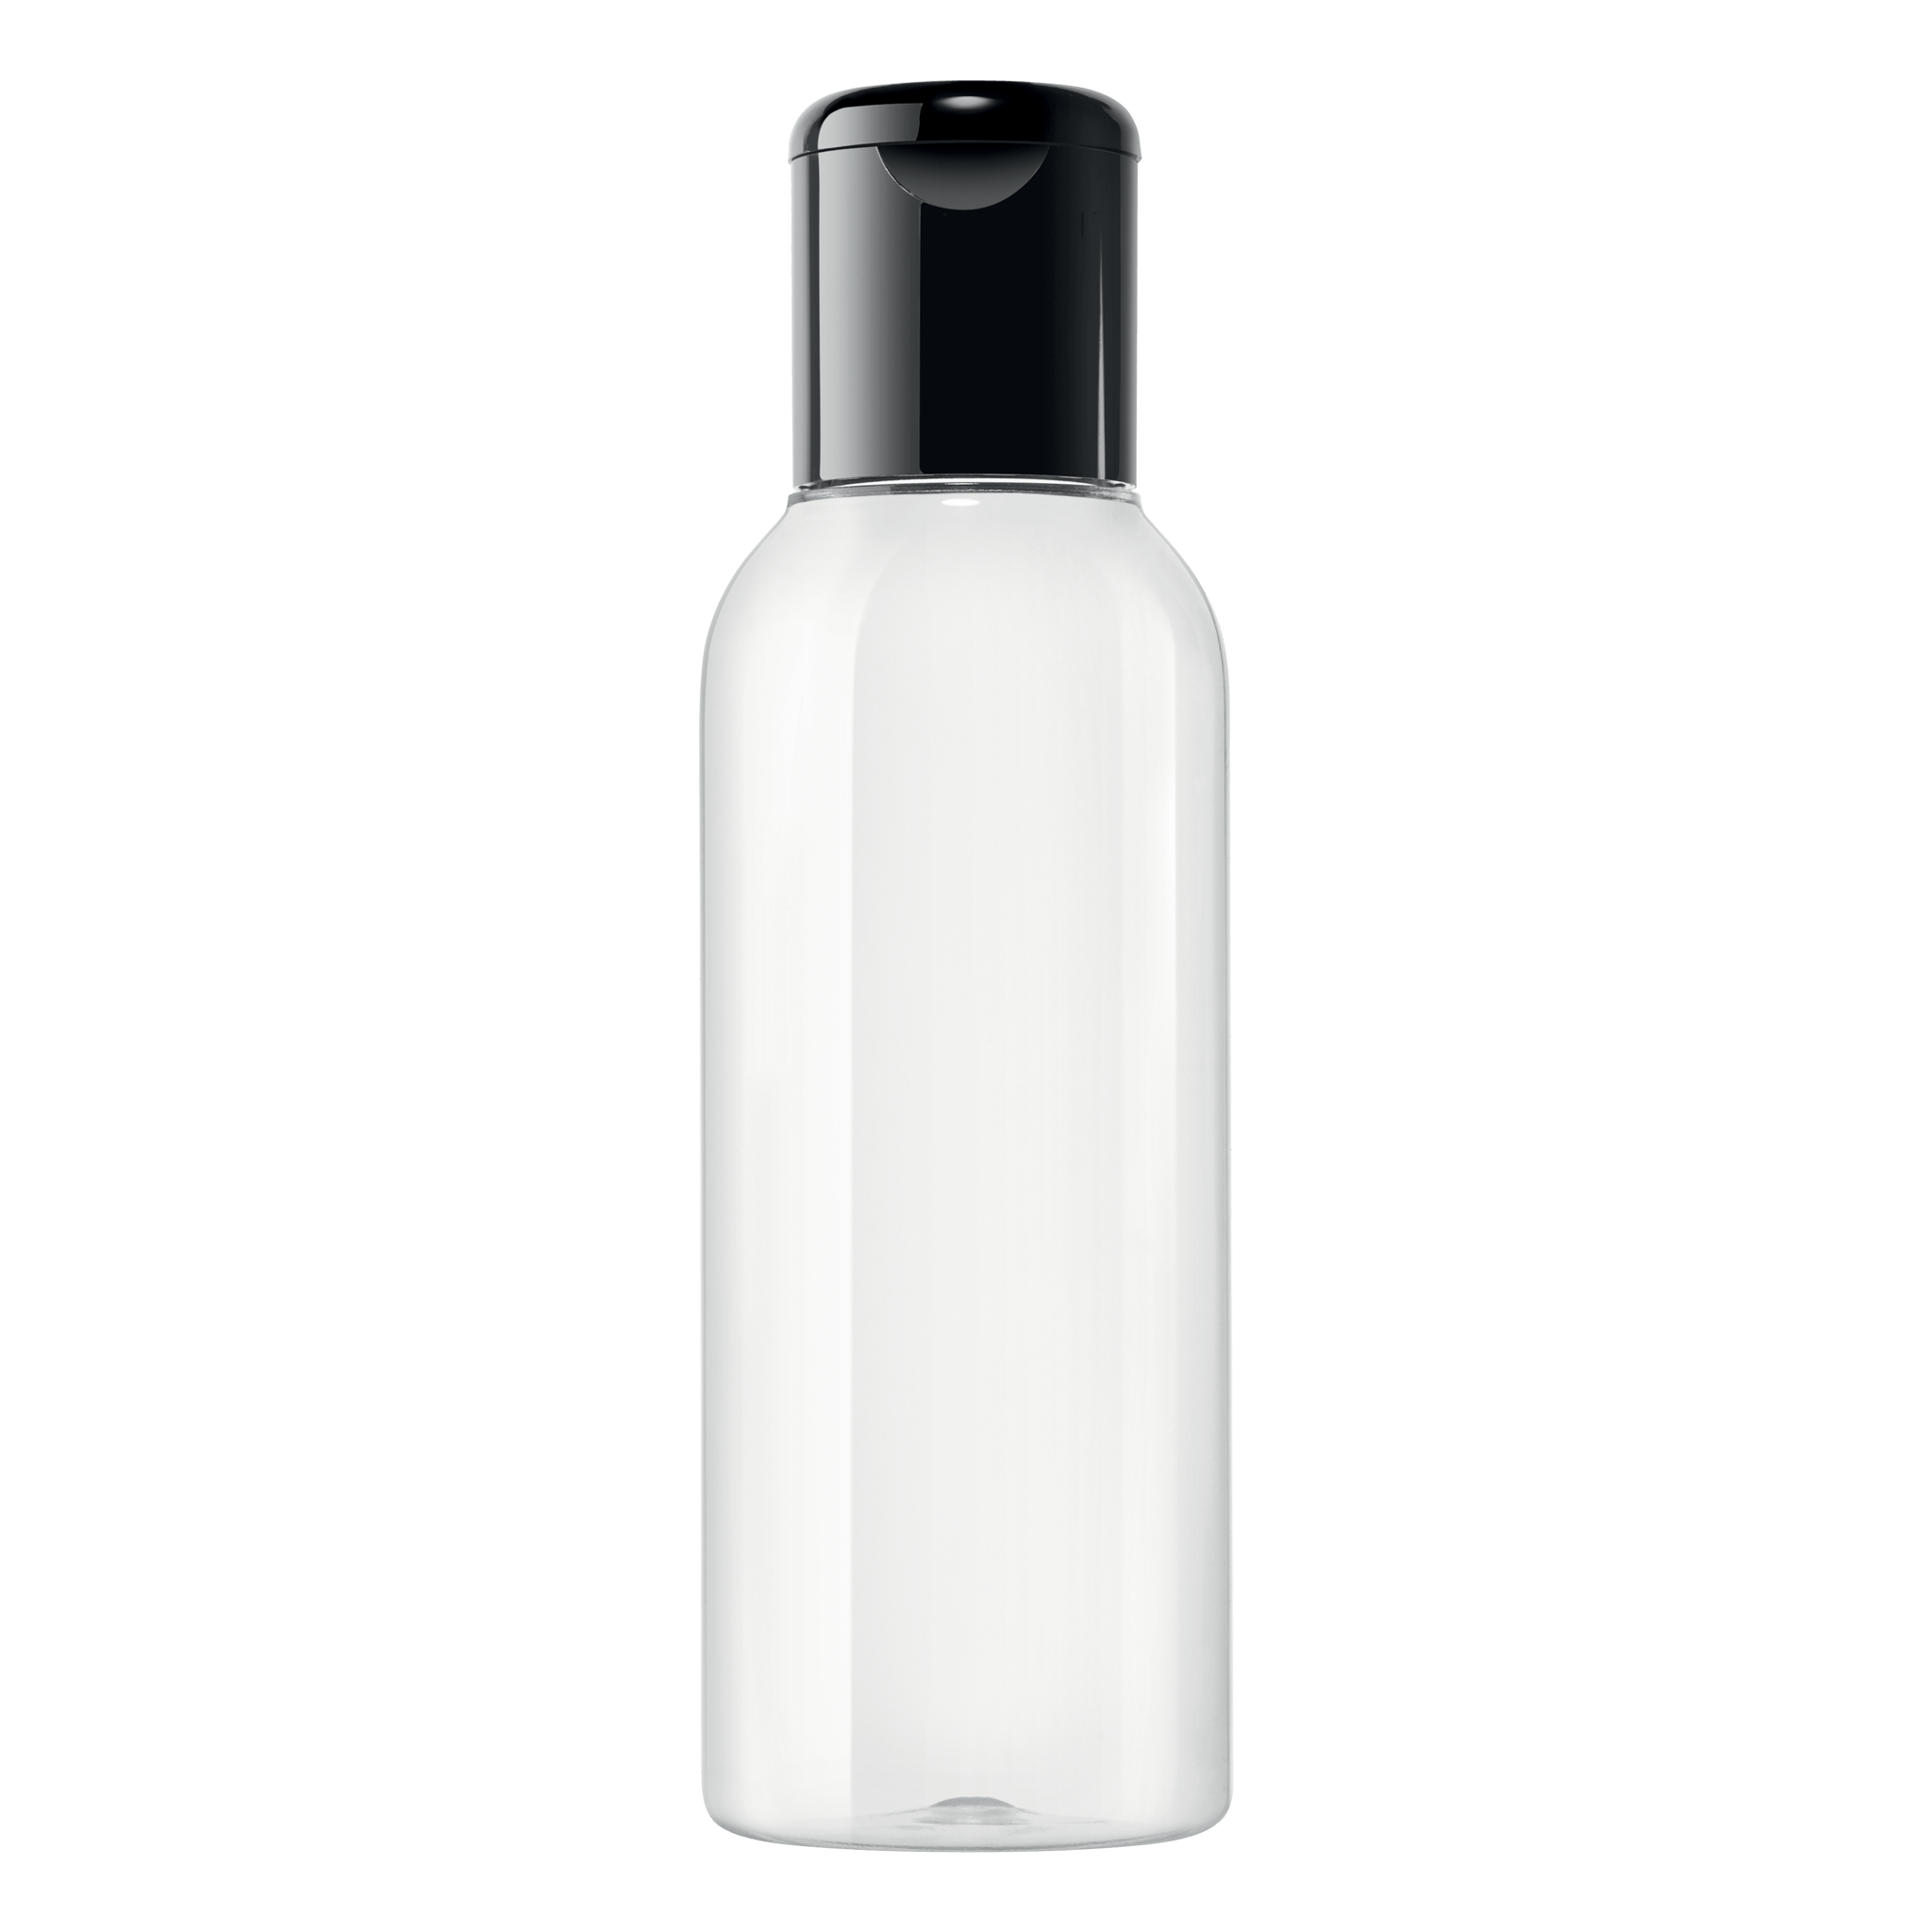 Empty ml containers make. Lotion bottle png